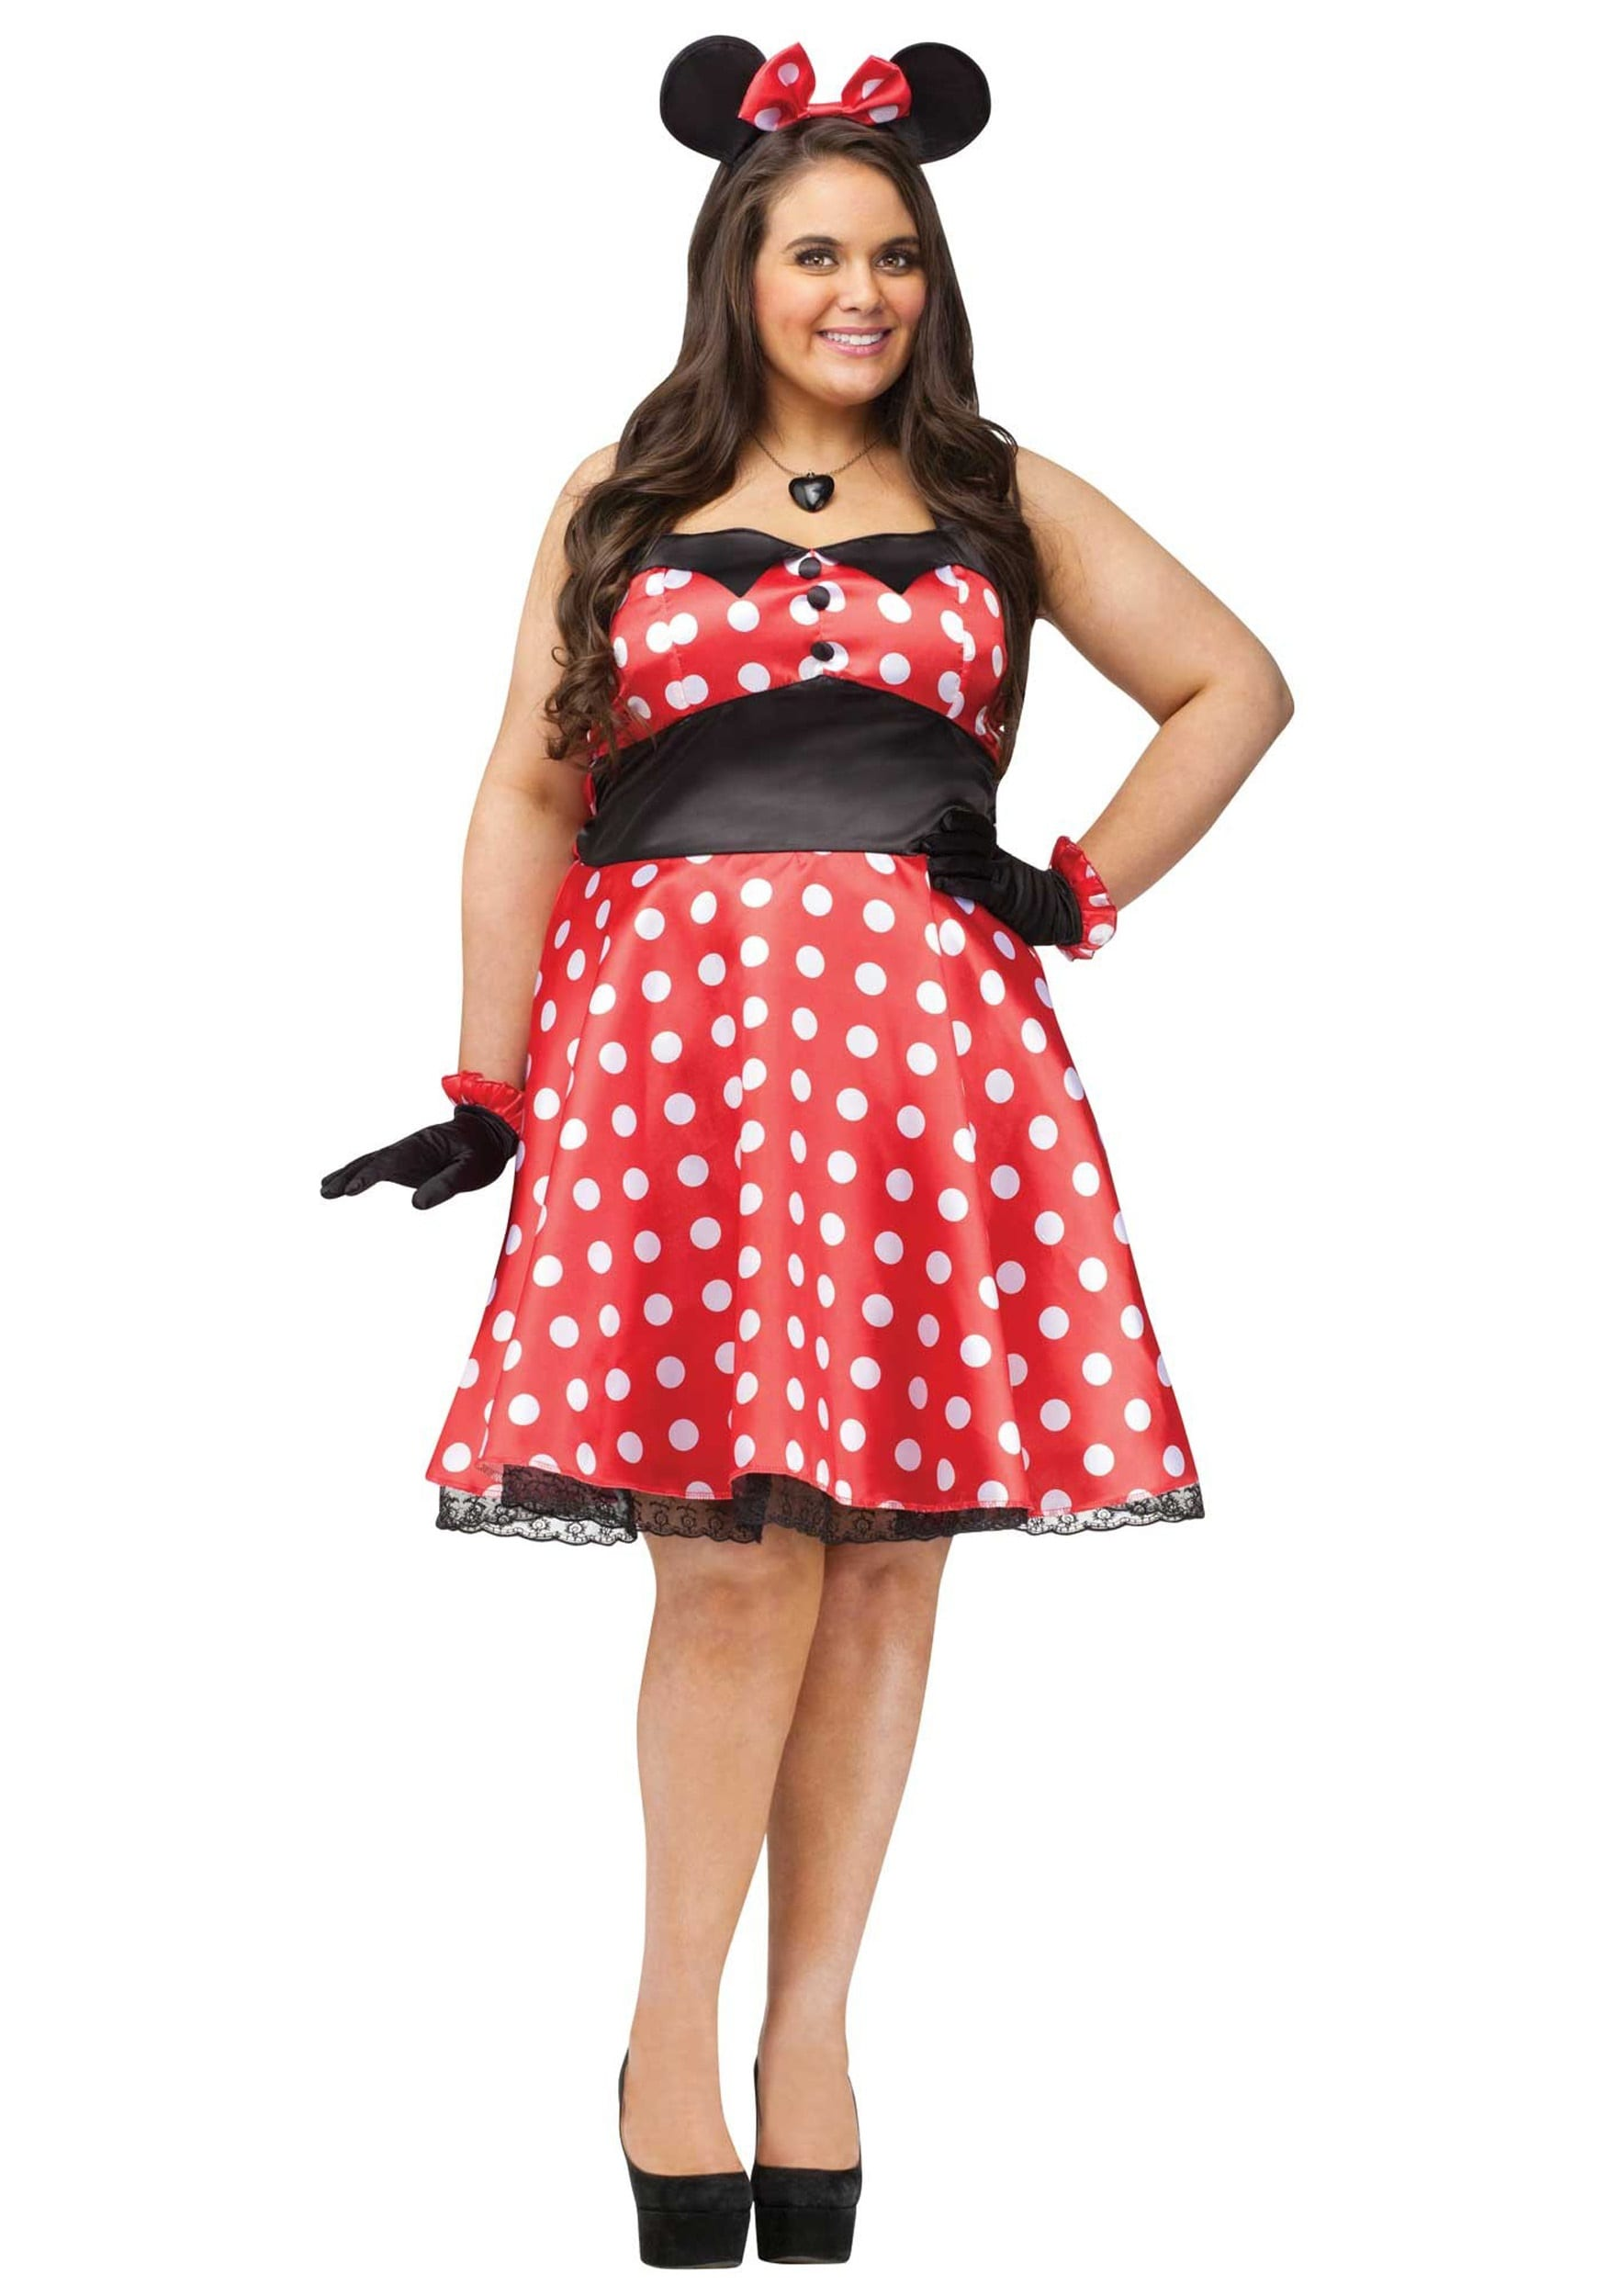 Top 10 Best Plus Size Halloween Costumes - 2019-3784